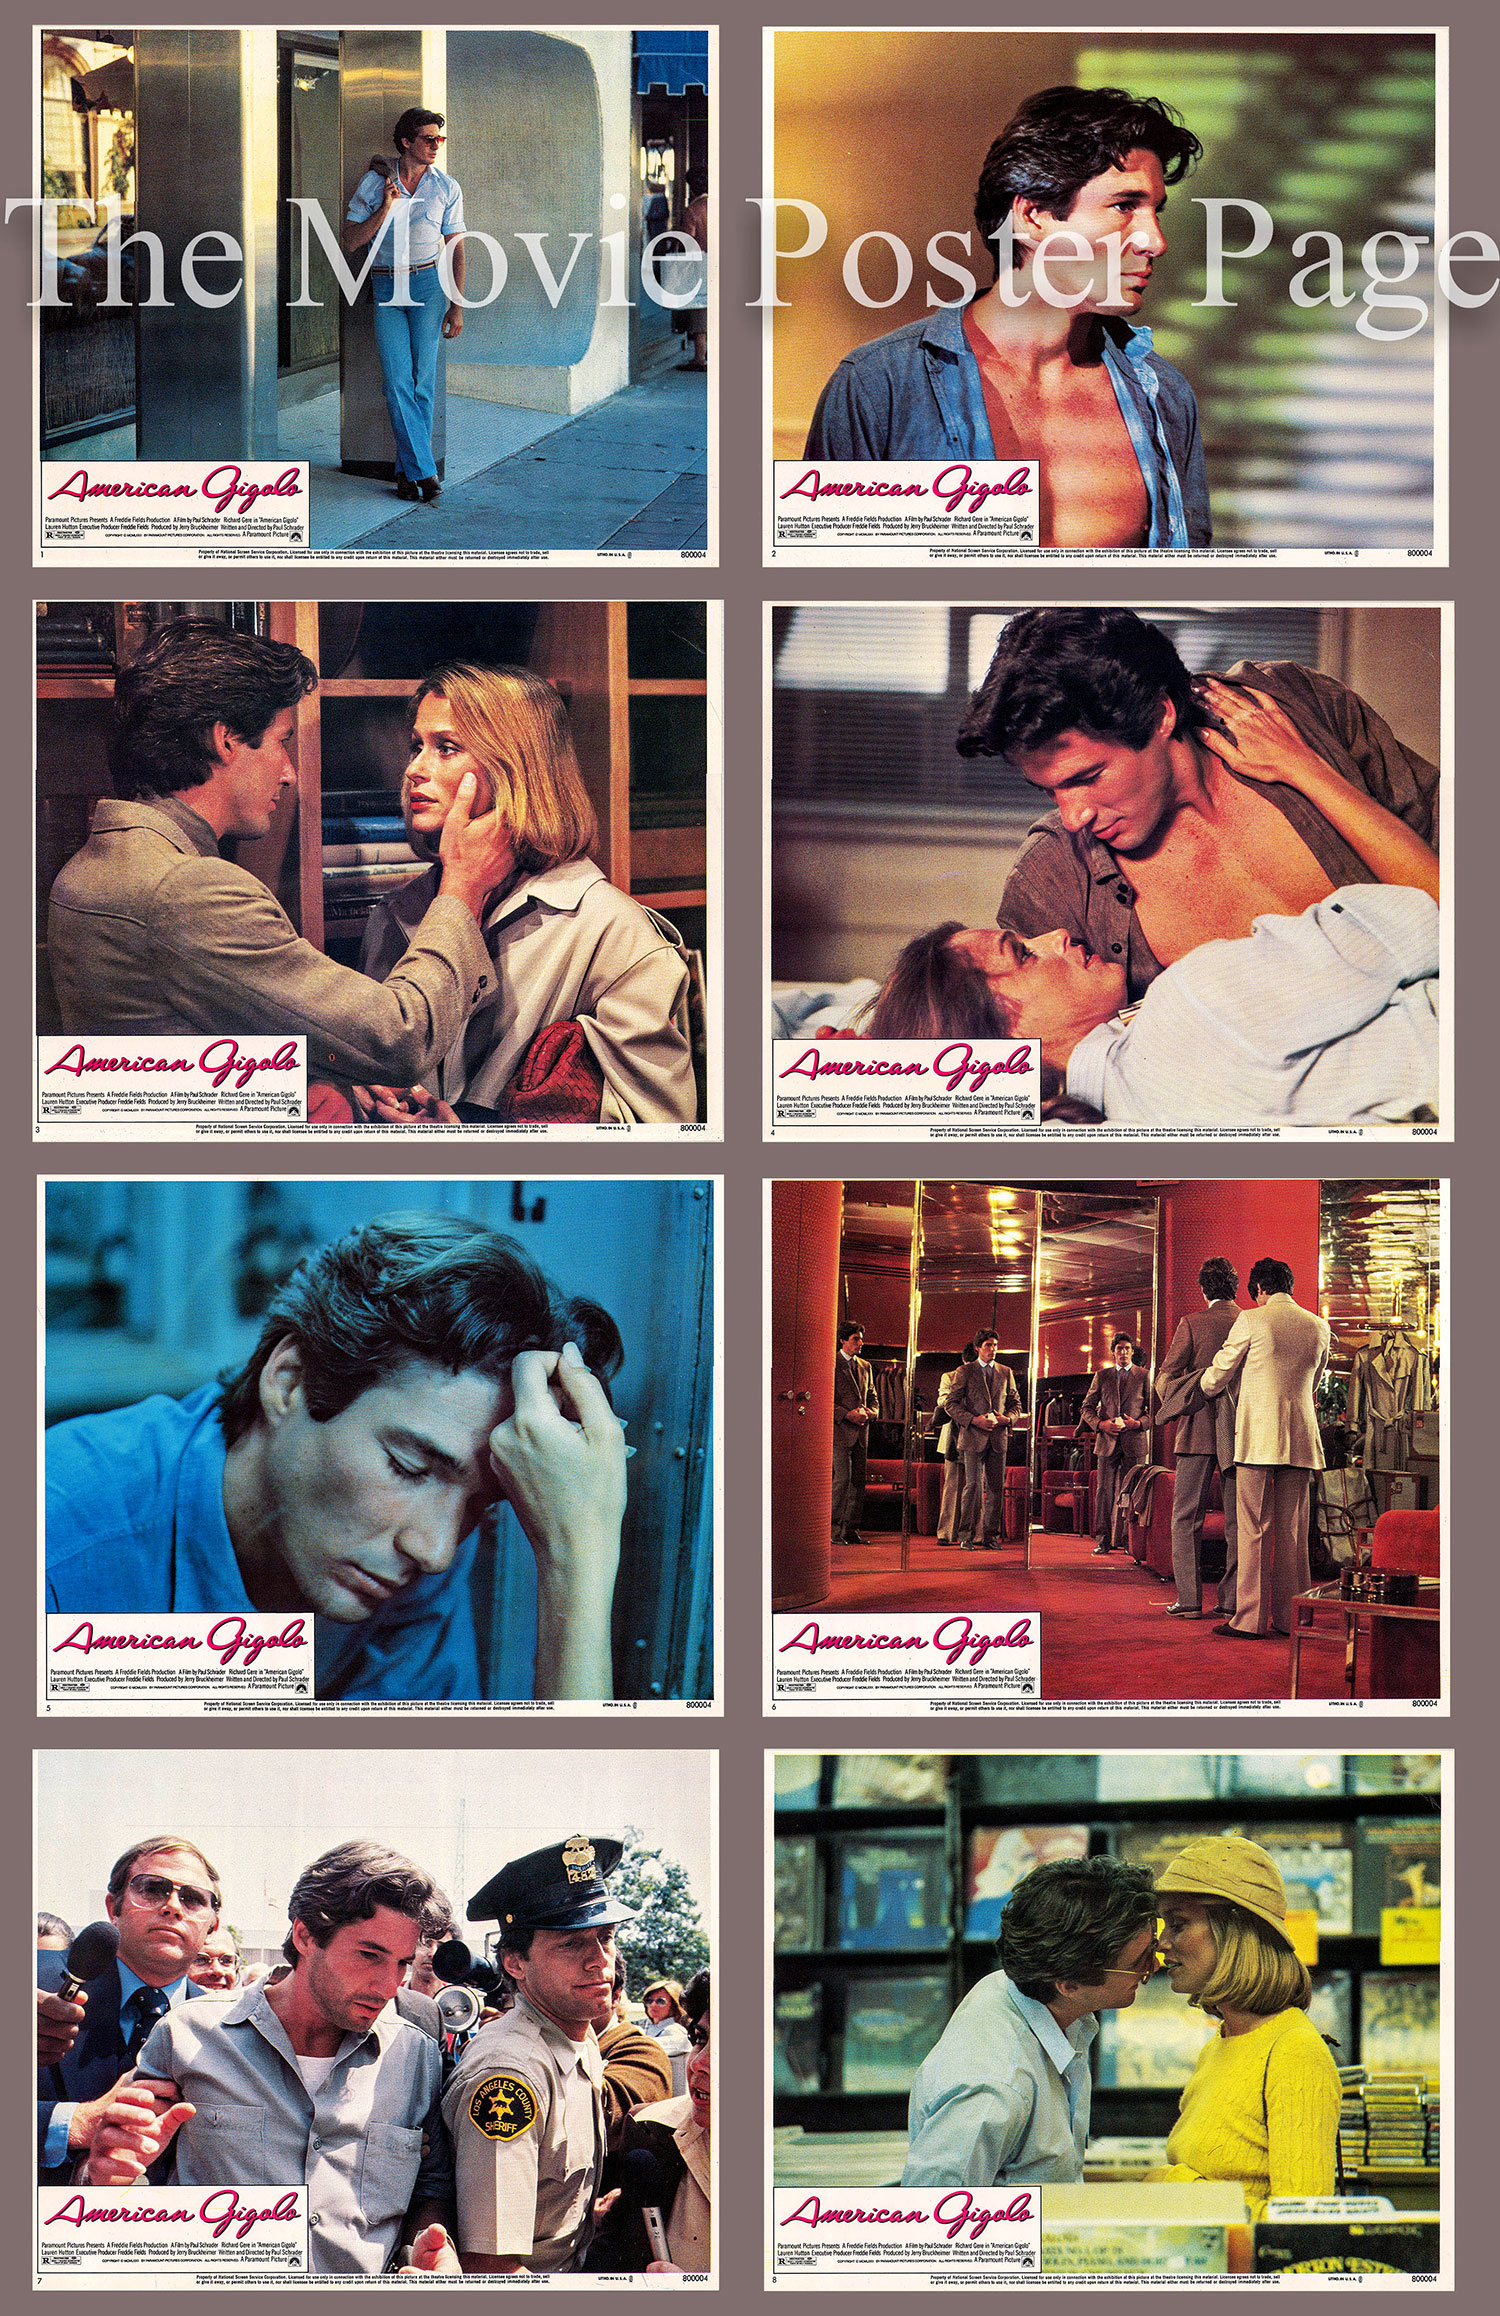 Pictured is a US Lobby Card set for the 1980 Paul Schrader film American Gigolo starring Richard Gere.